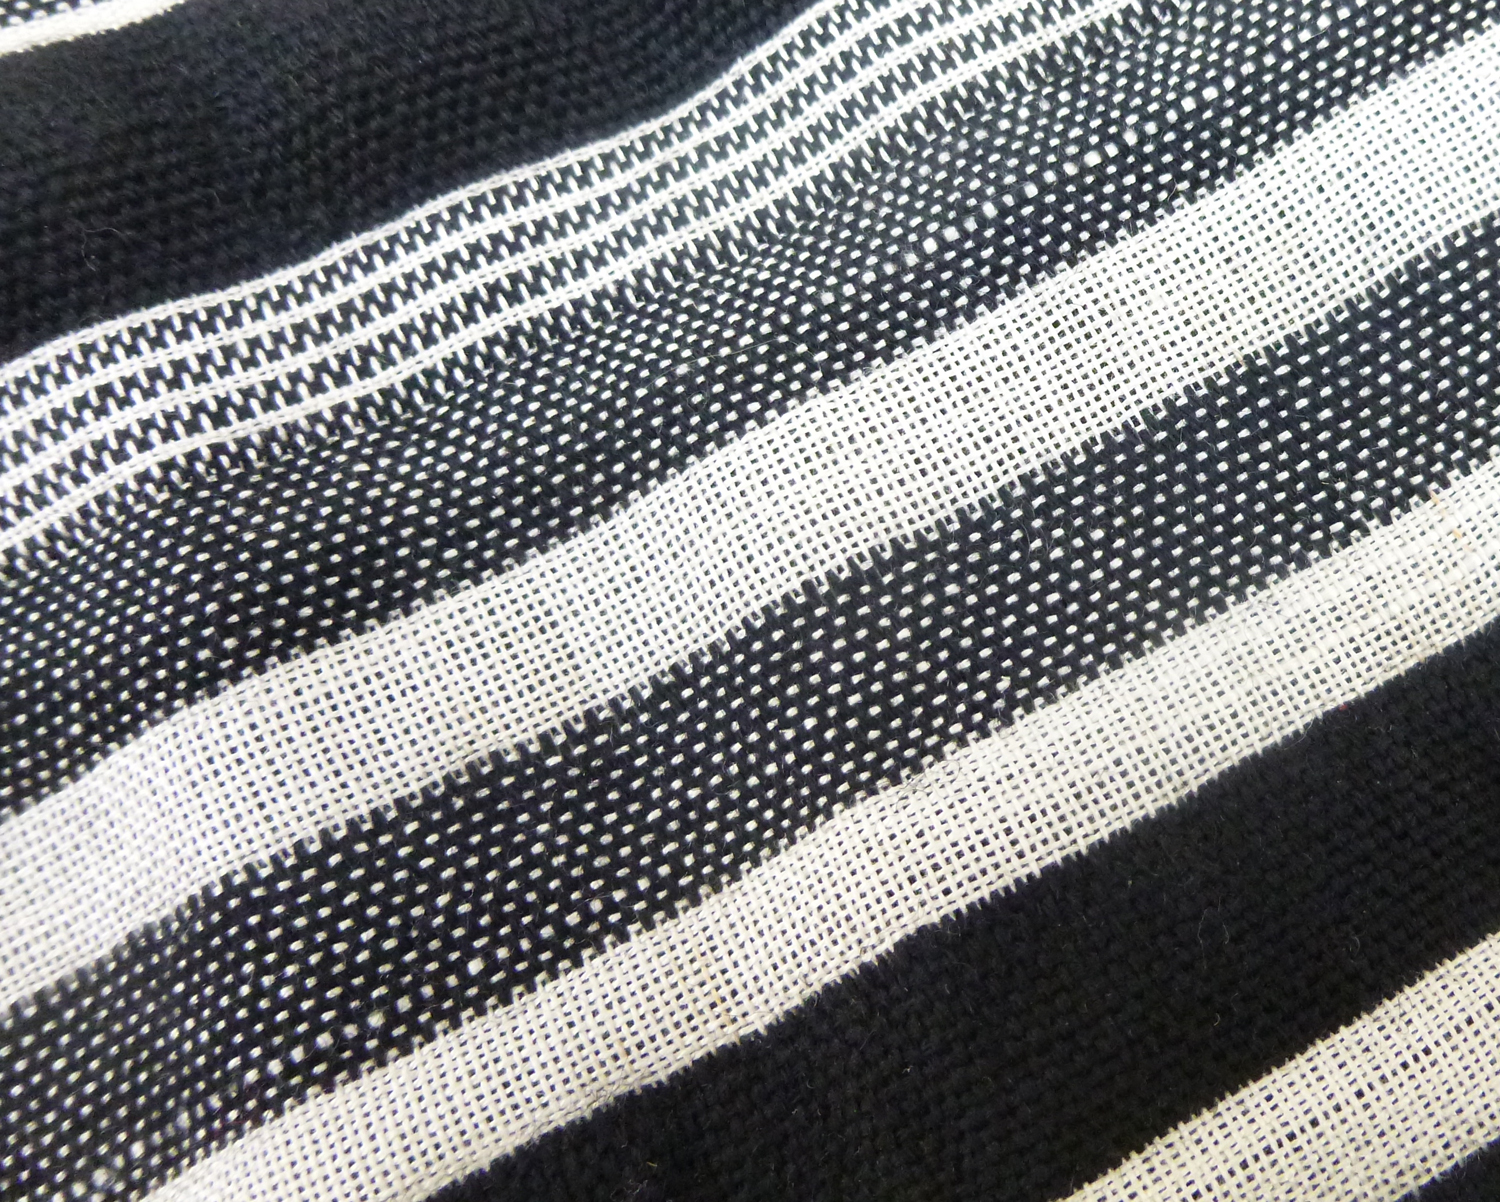 Hand woven on Texel dobby loom using an alternating (end on end) warp of black wool  and matural silk warp.